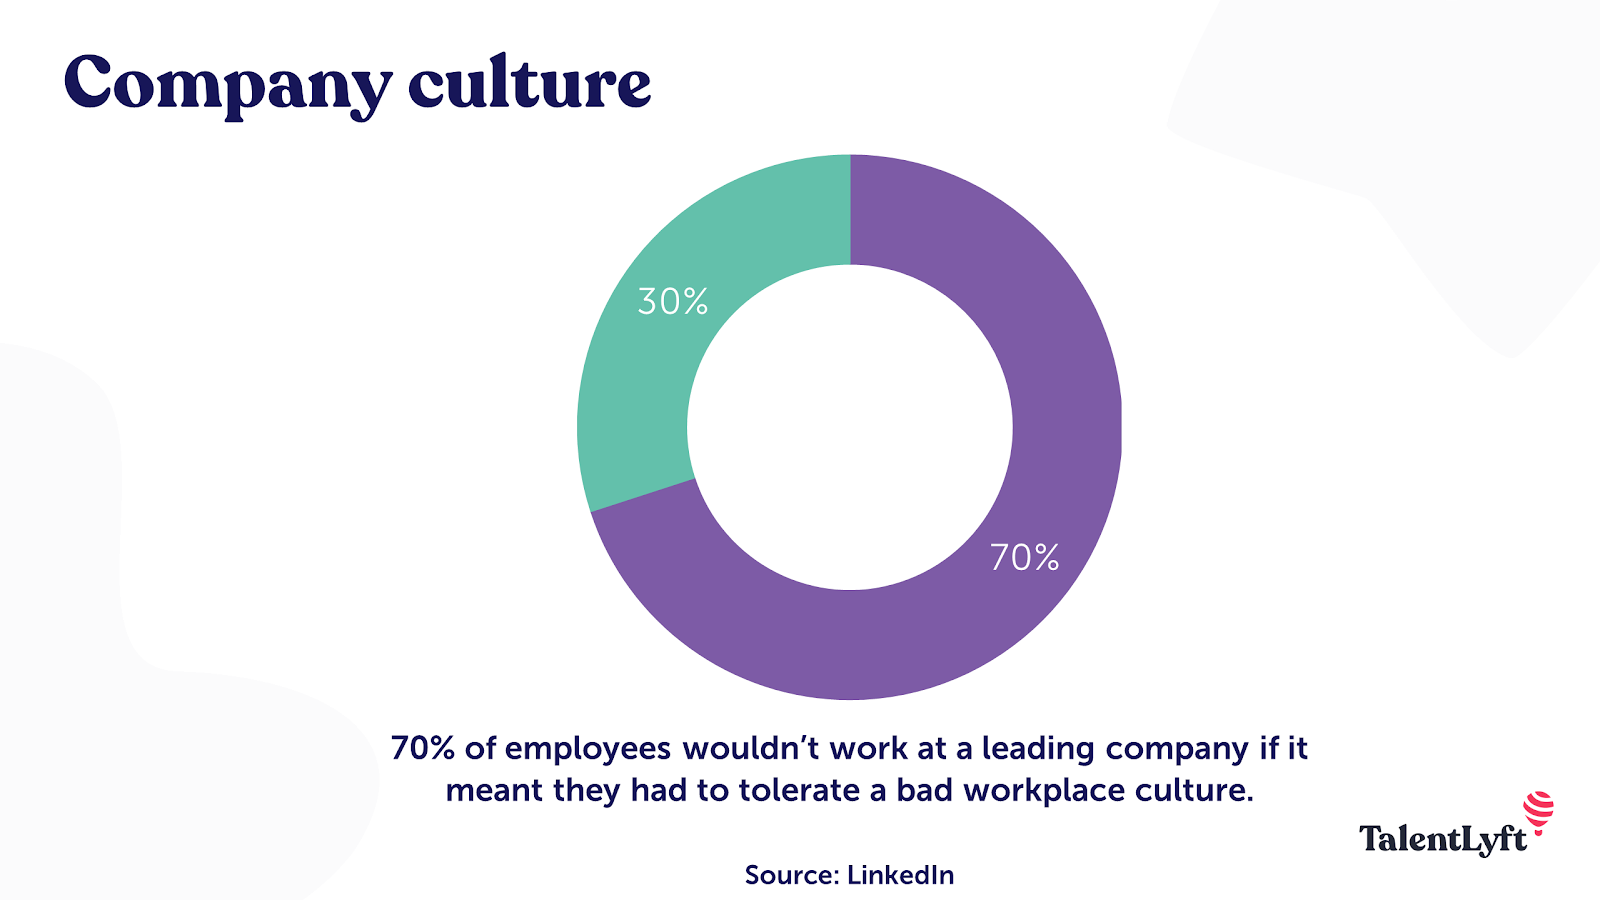 Company culture importance